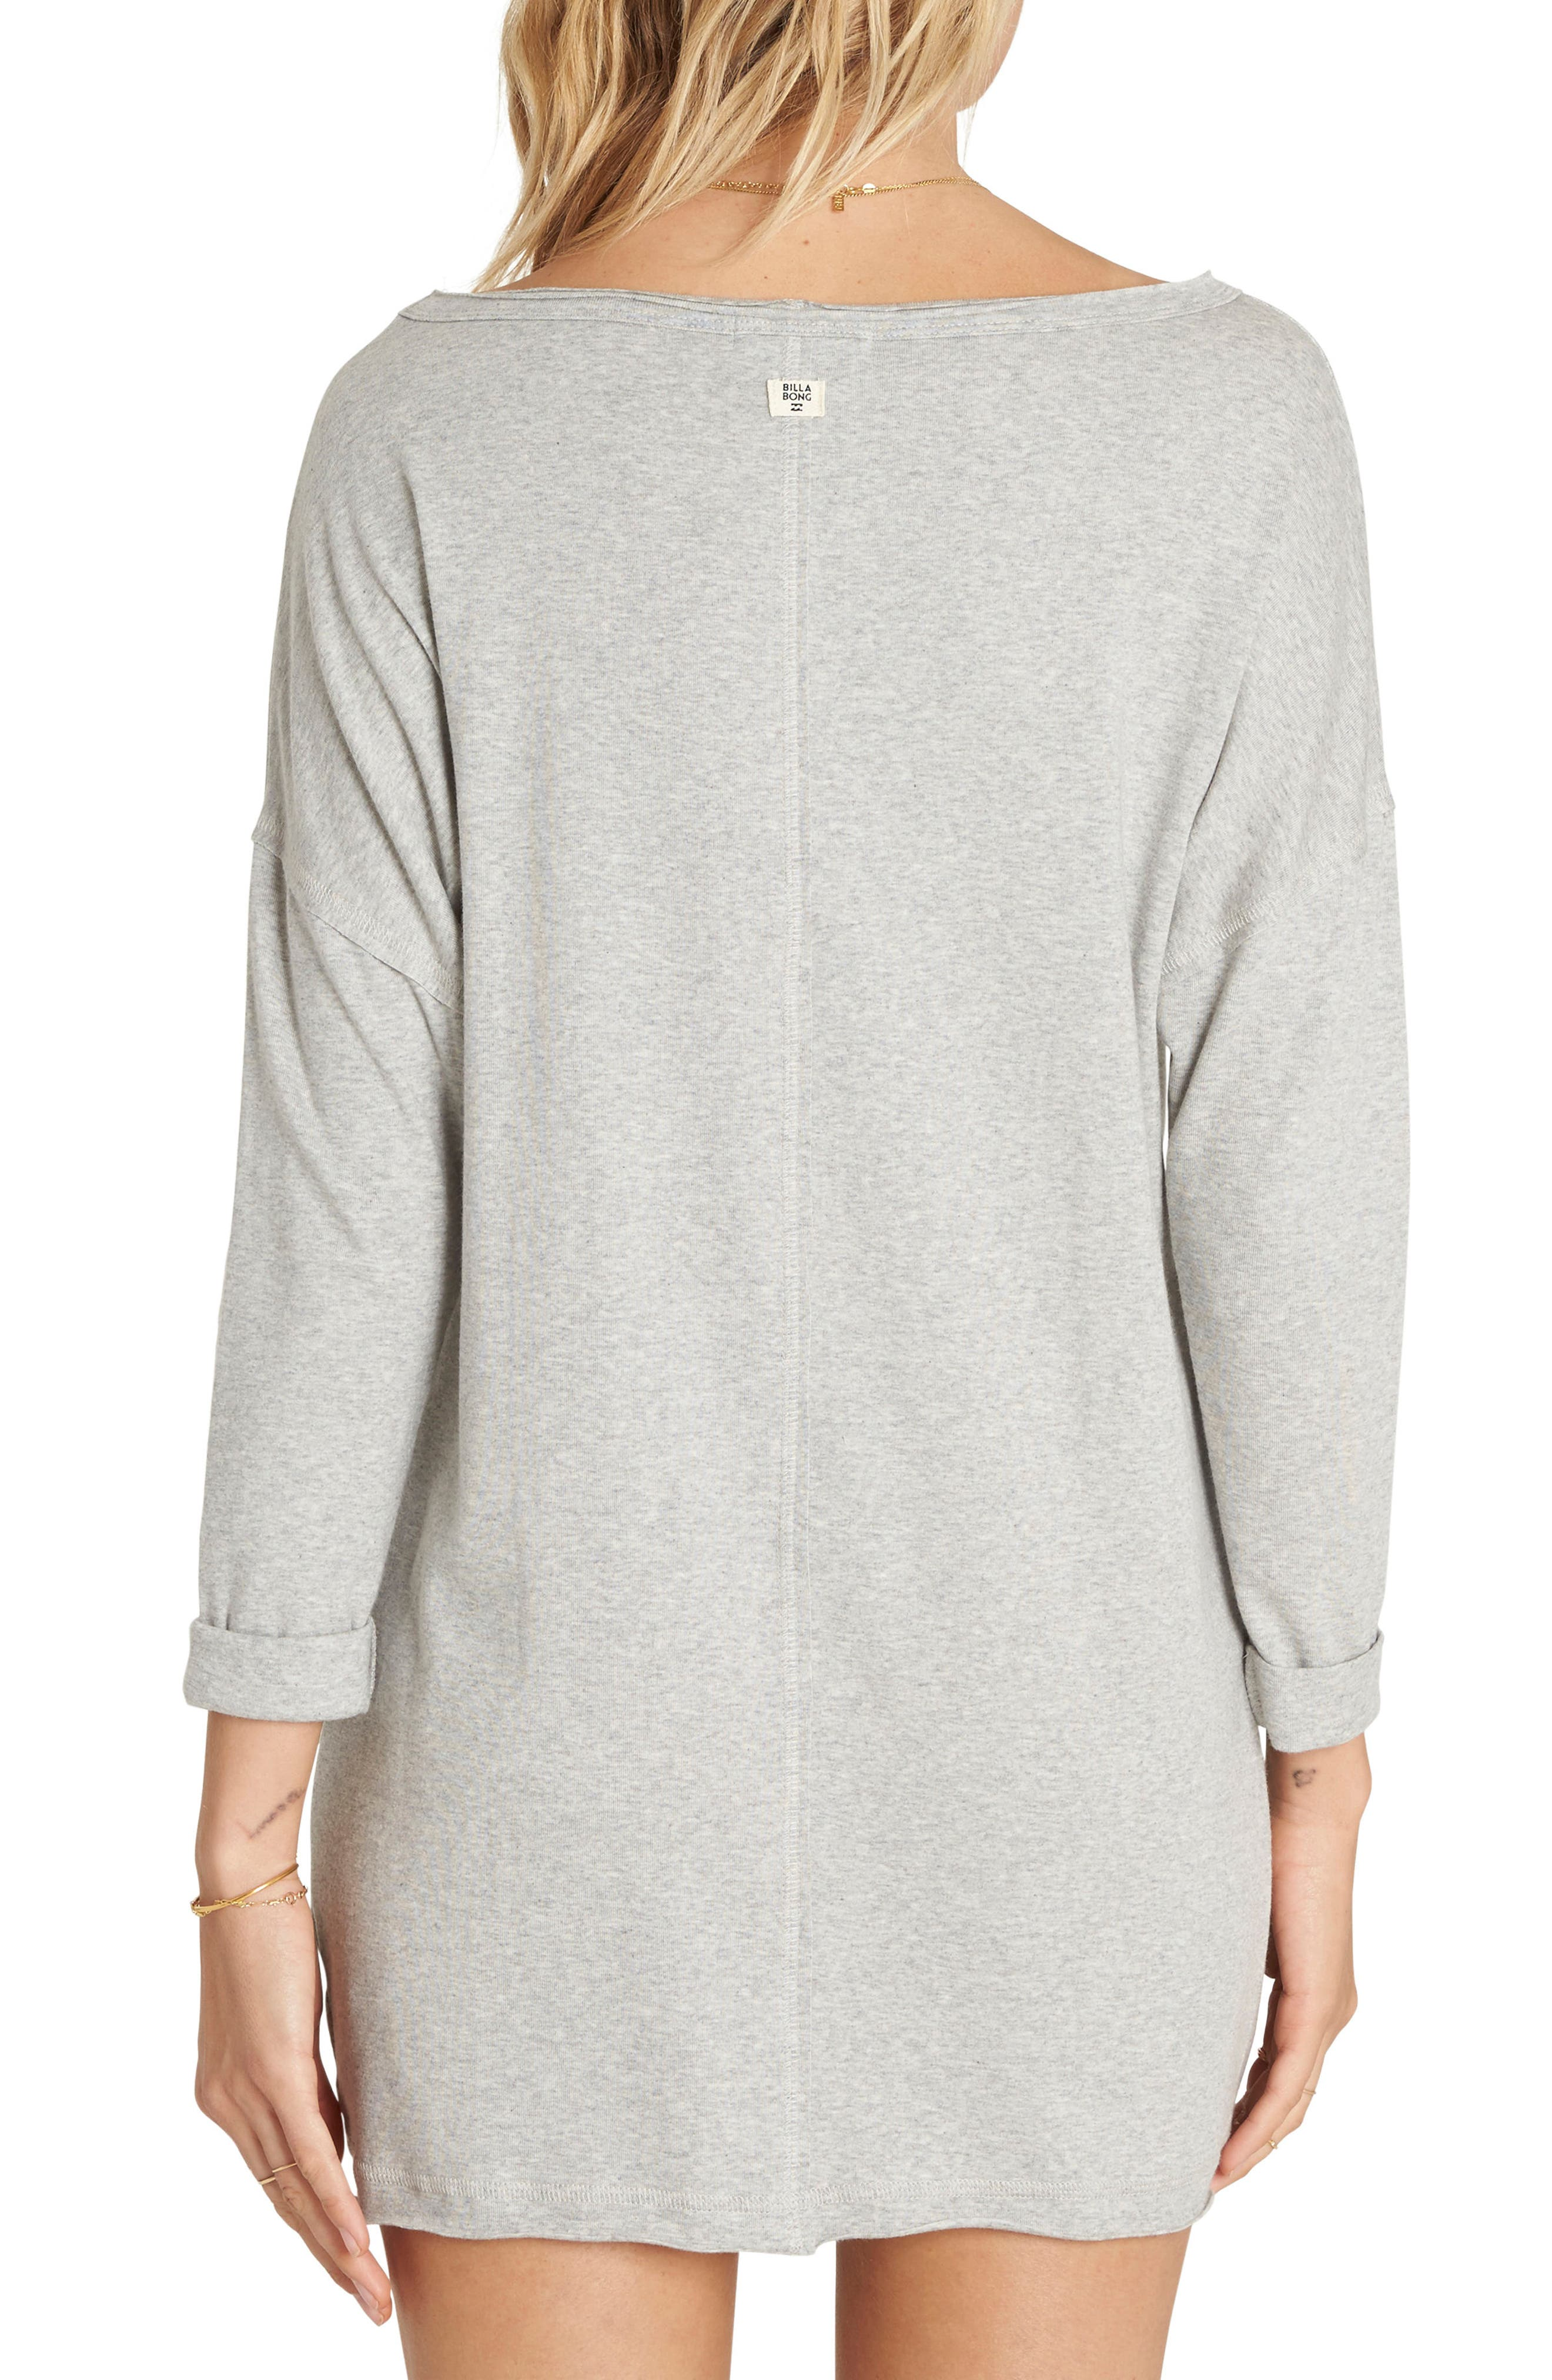 Only One T-Shirt Dress,                             Alternate thumbnail 2, color,                             Athletic Grey